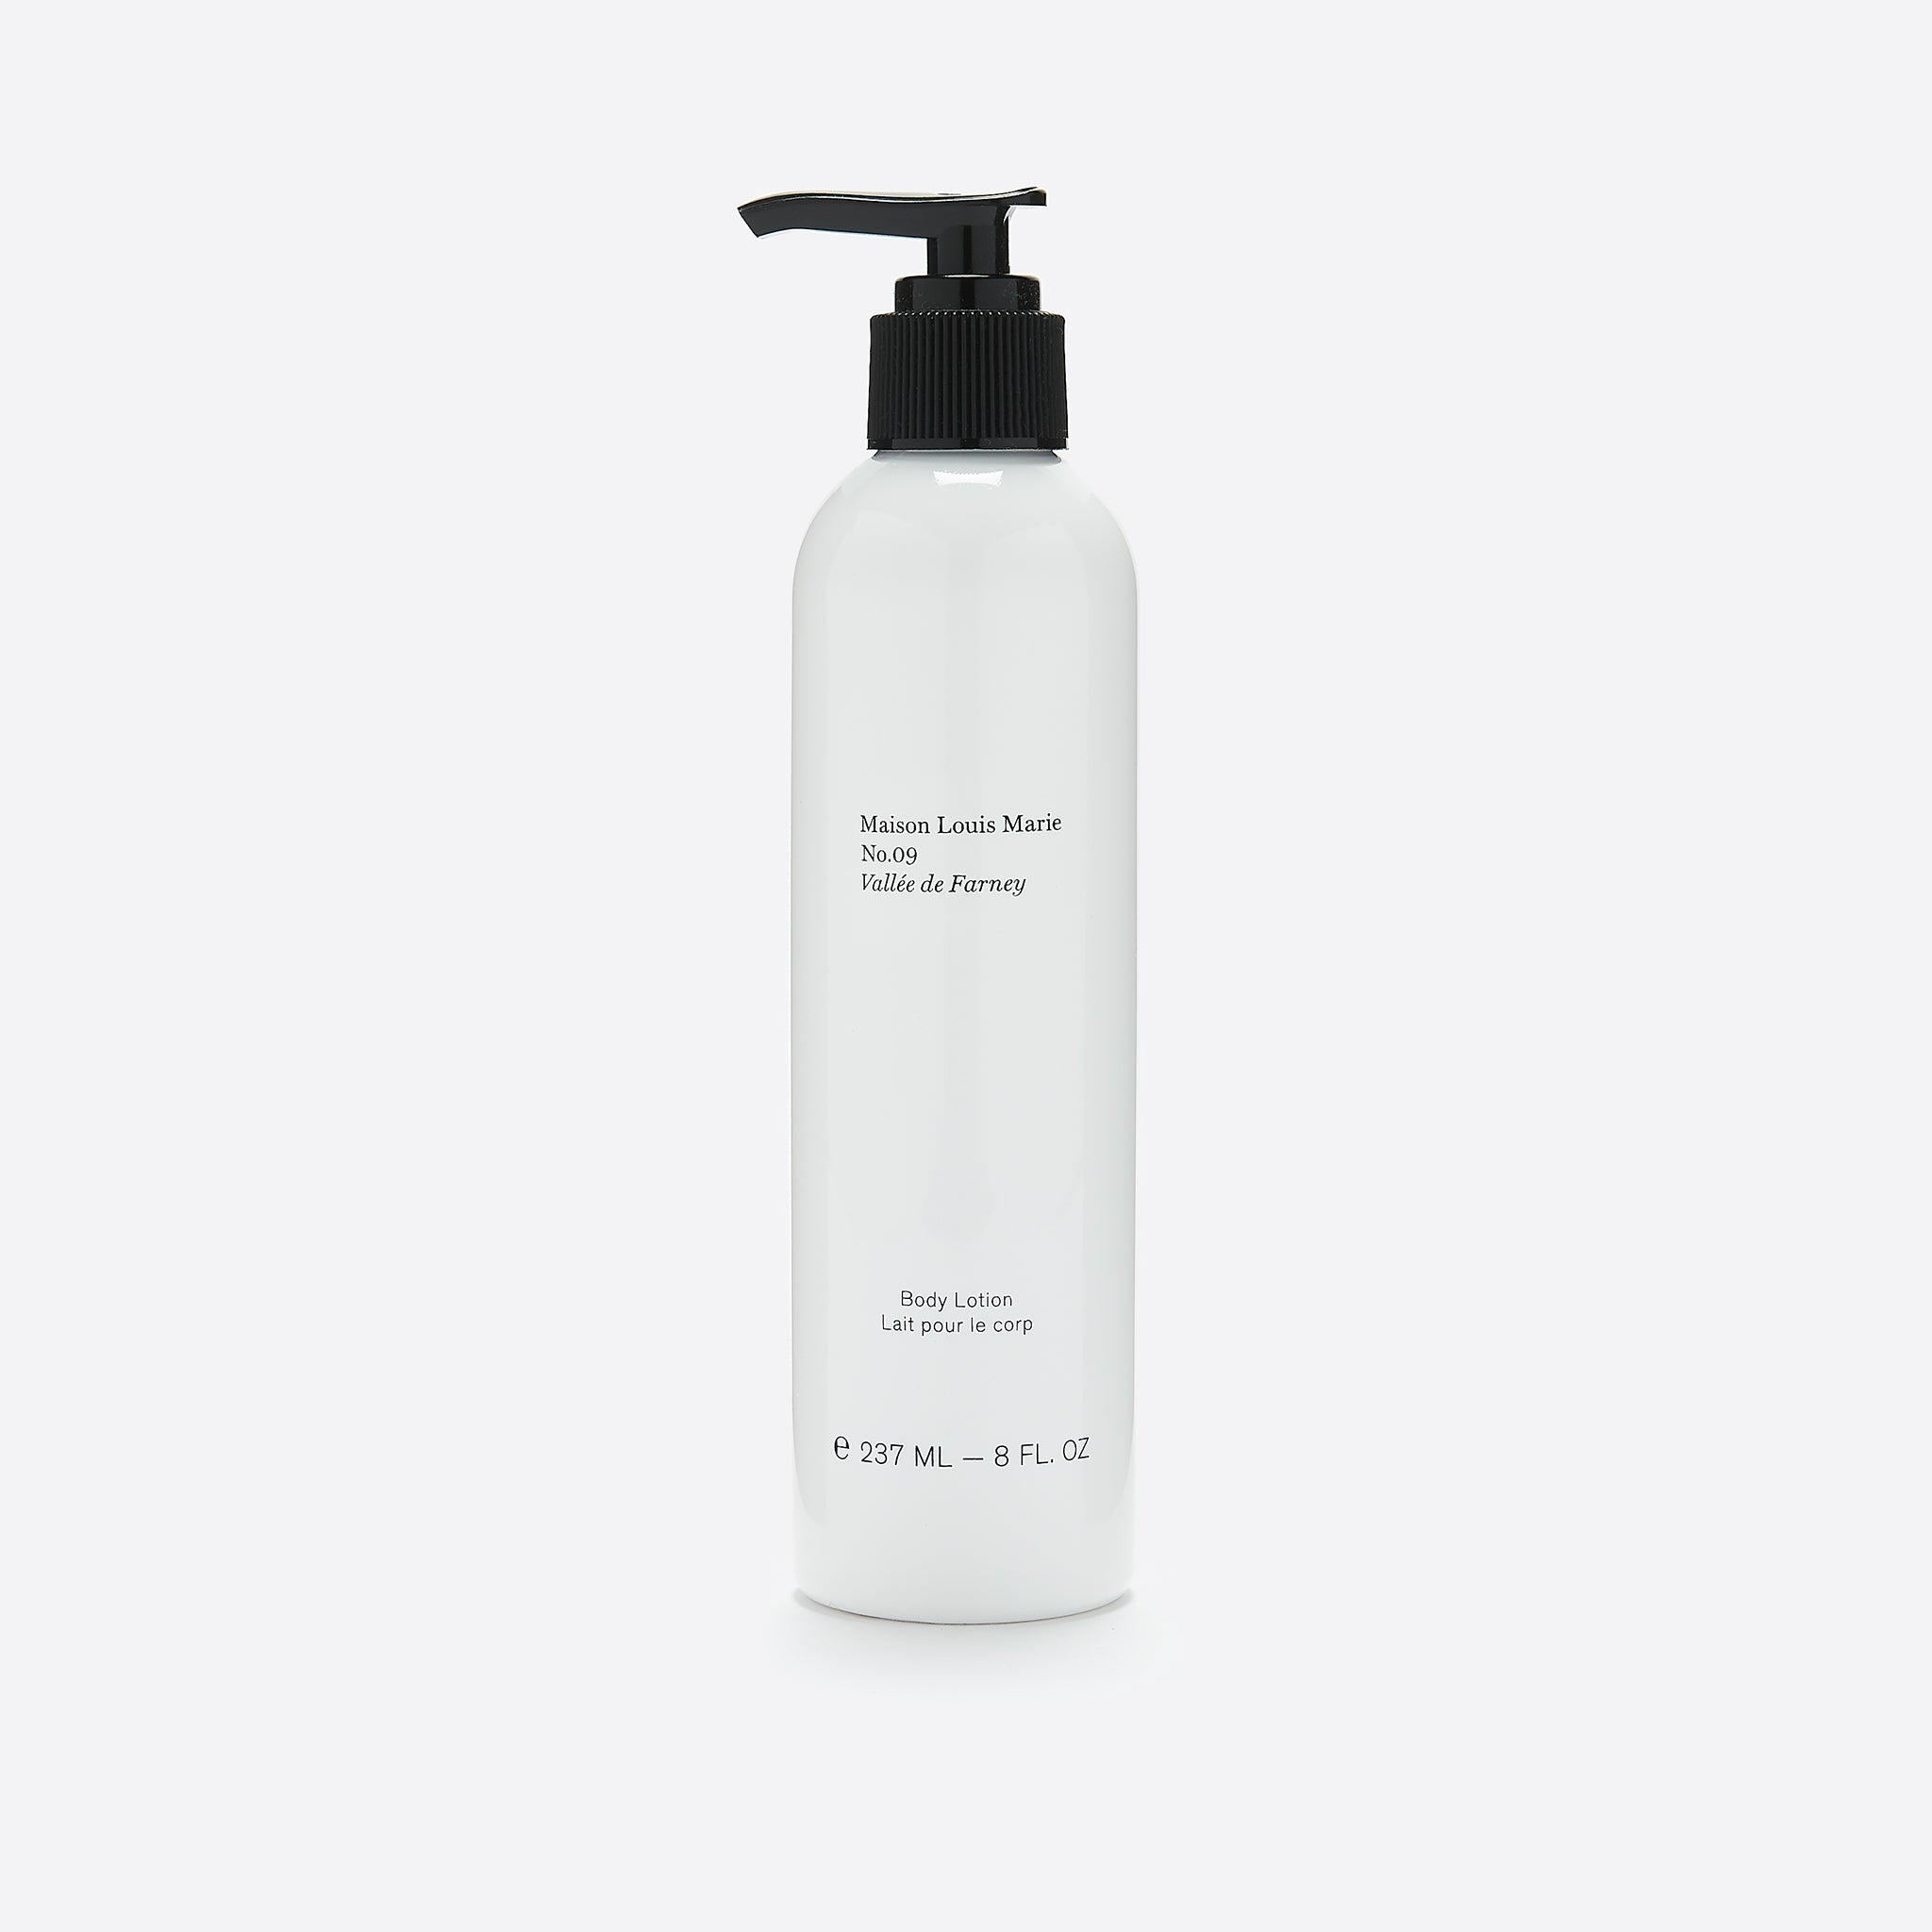 Maison Louis Marie Body Lotion in No.9 Vallée de Farney